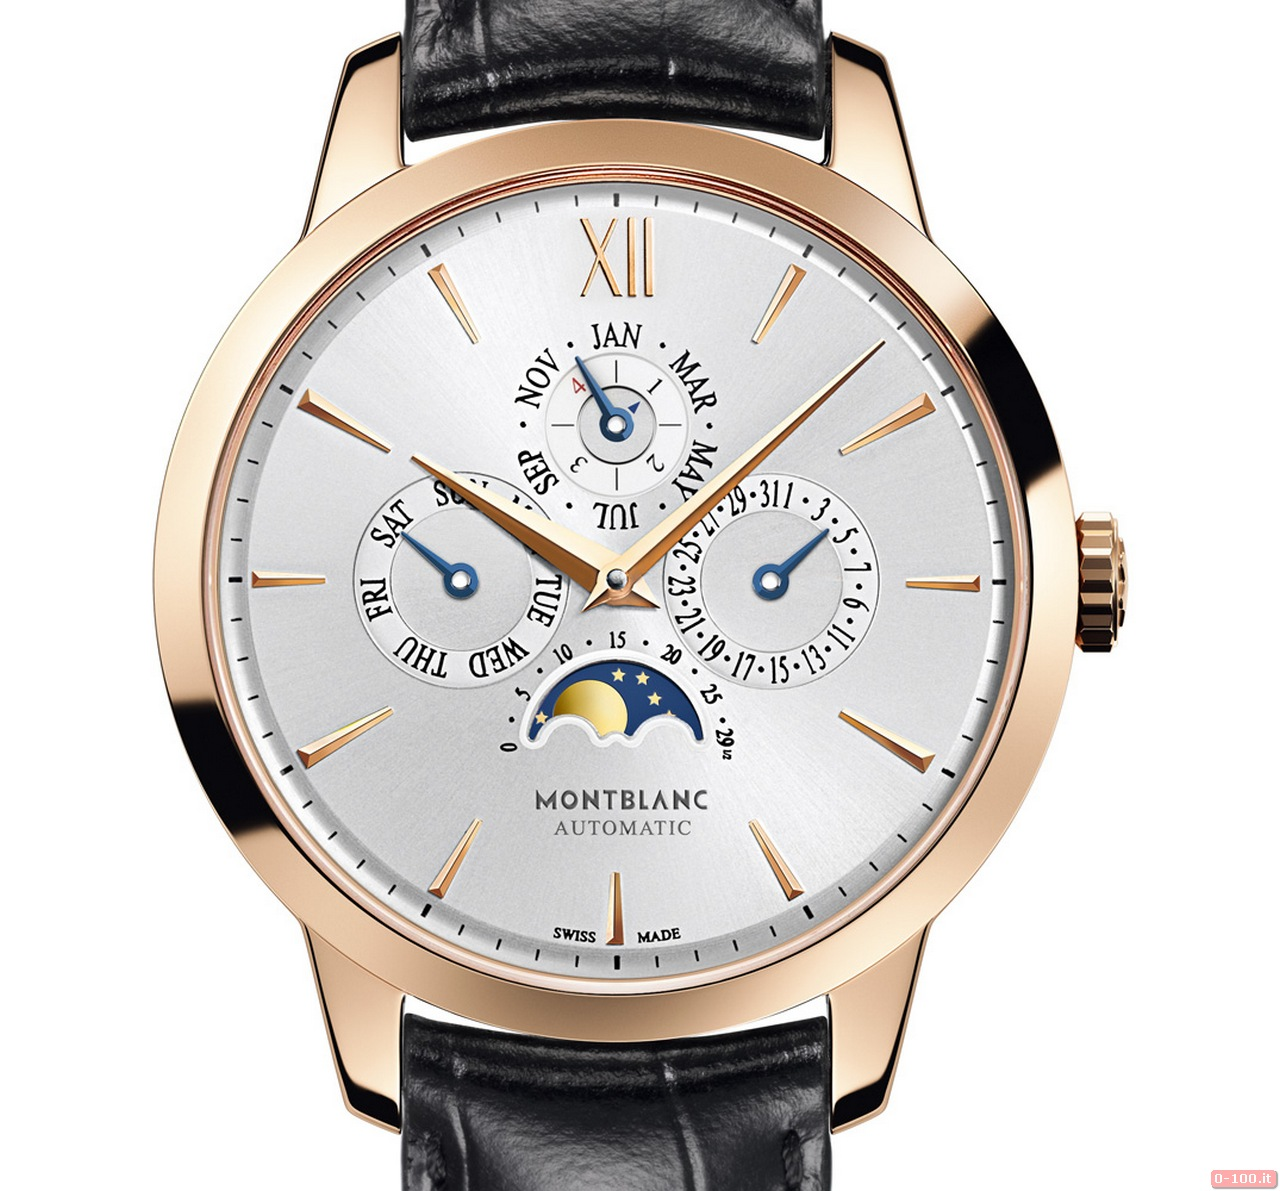 sihh-2014-montblanc-meisterstuck-heritage-perpetual-calendar-prezzo-price_0-1002